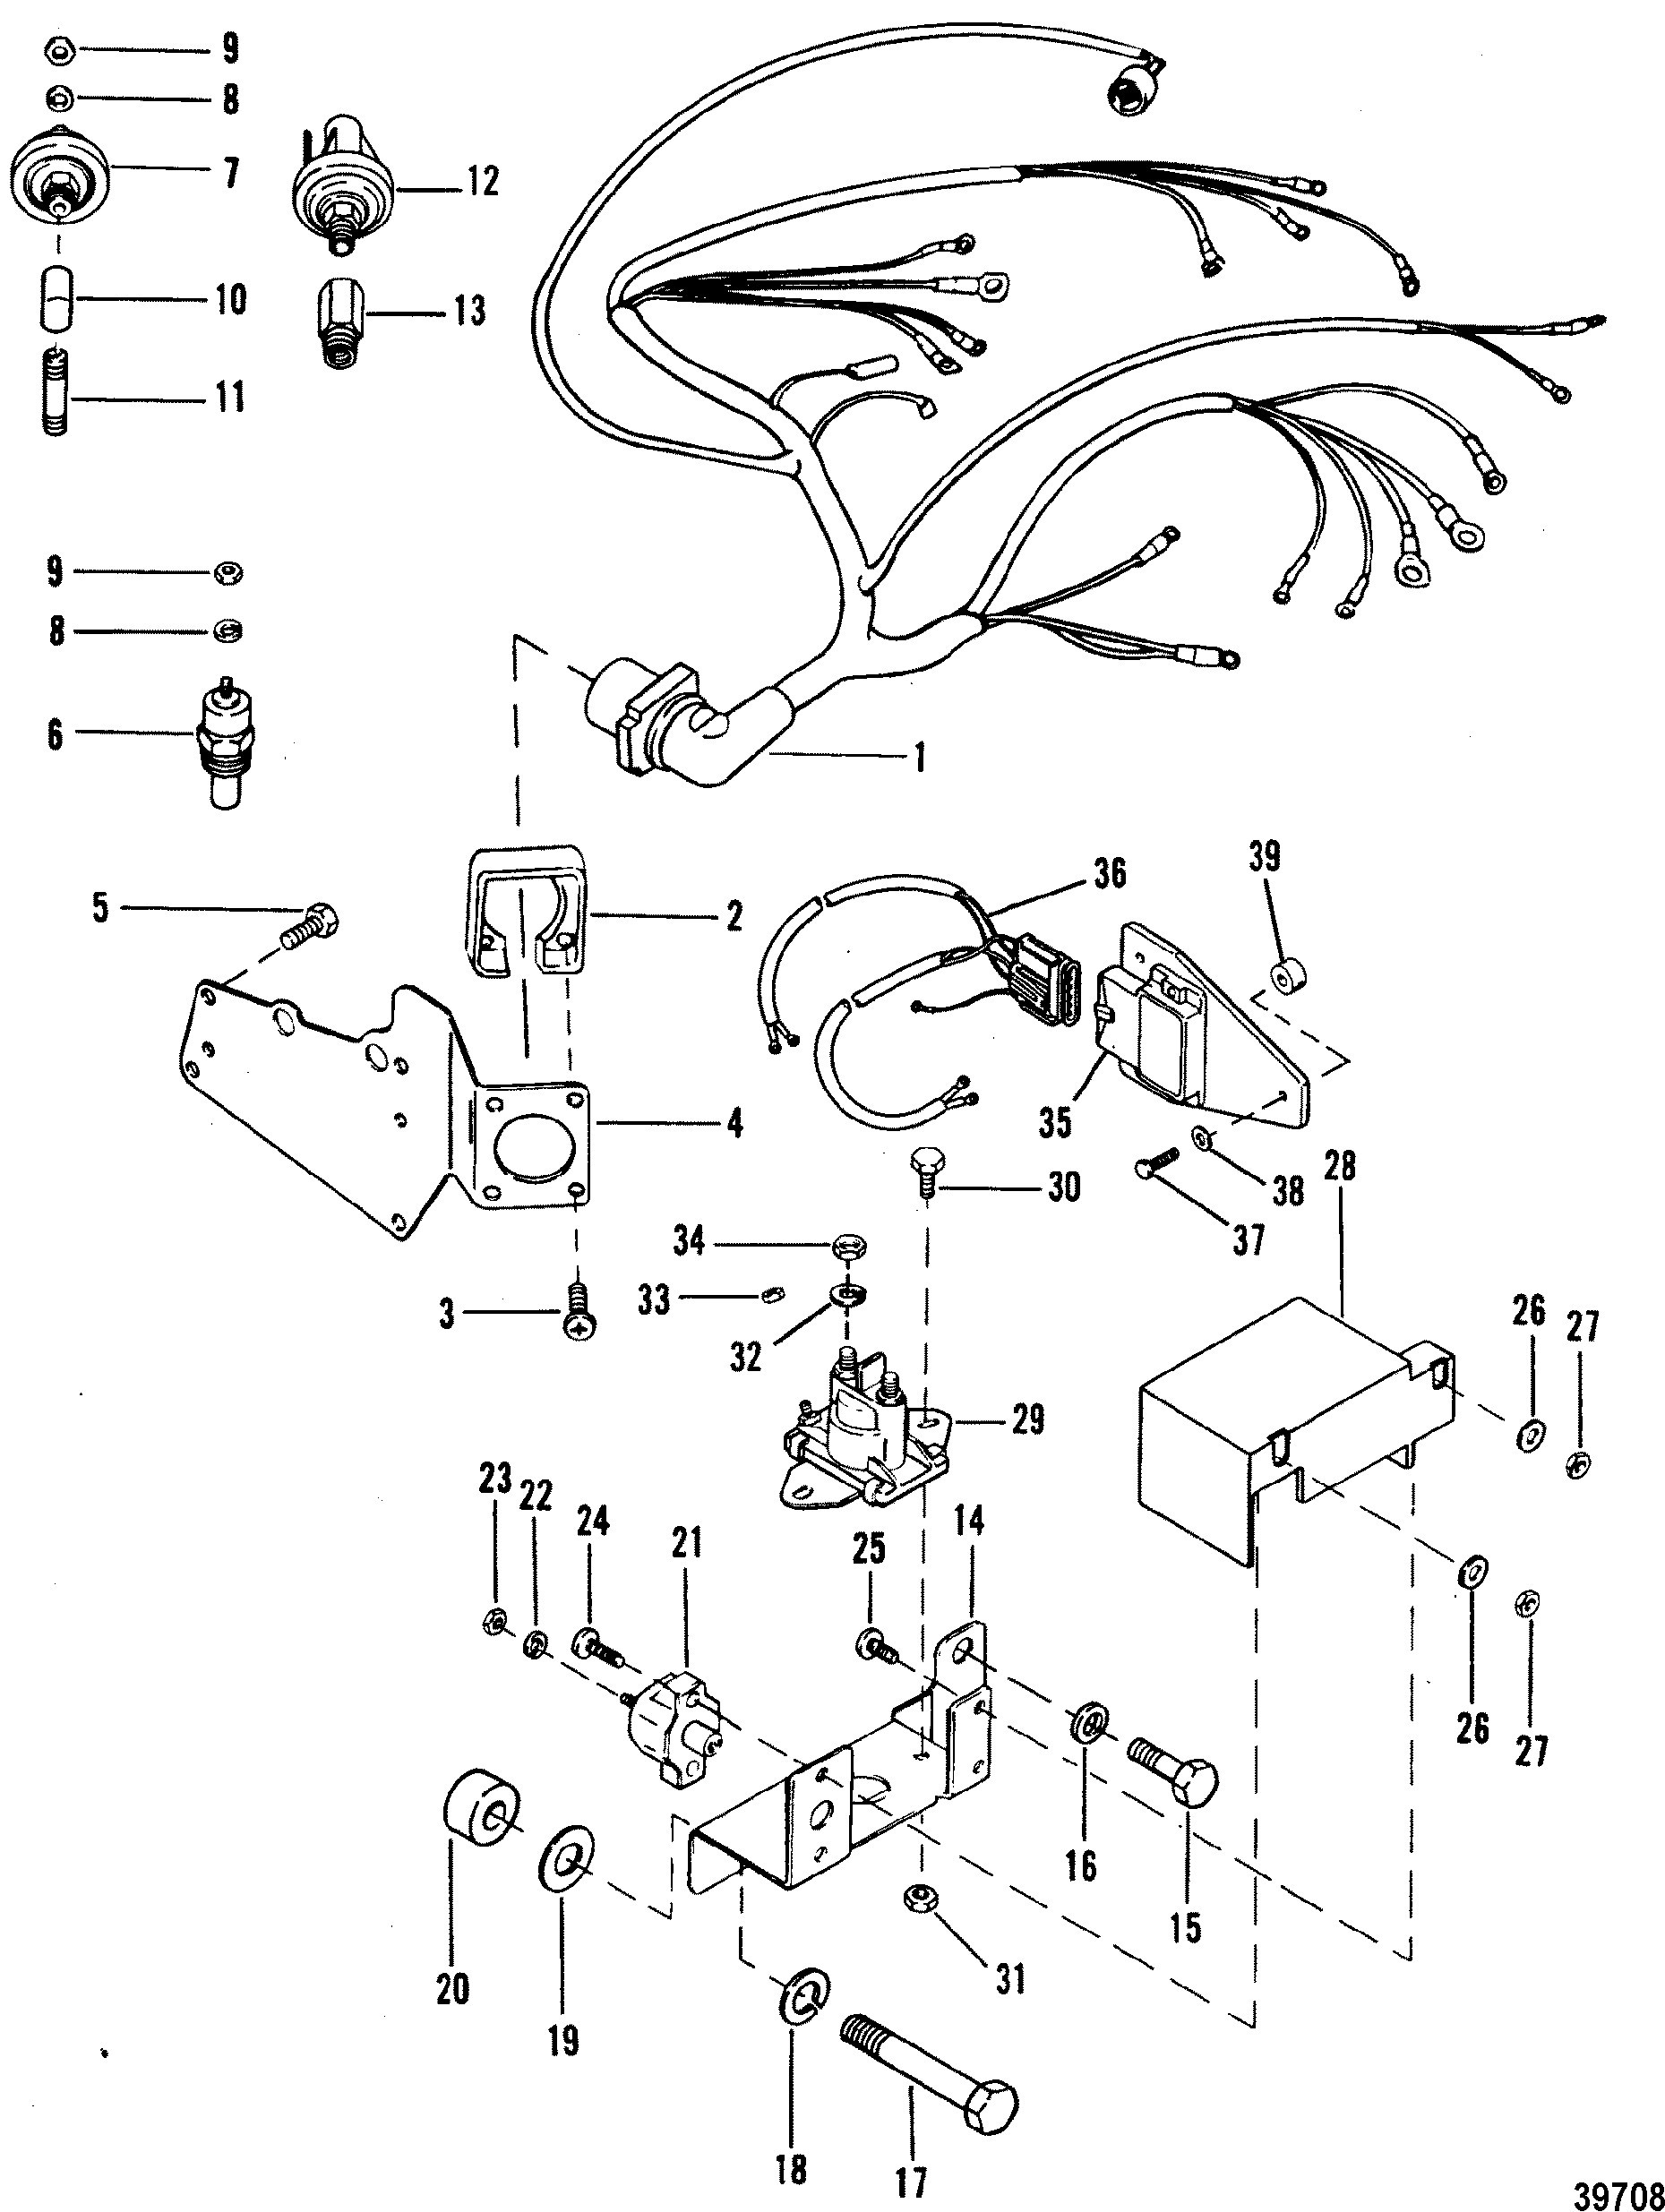 Mercruiser 4 3 Wiring Diagram Awesome Wiring Harness and Electrical Ponents for Mercruiser 4 3l 4 3lx